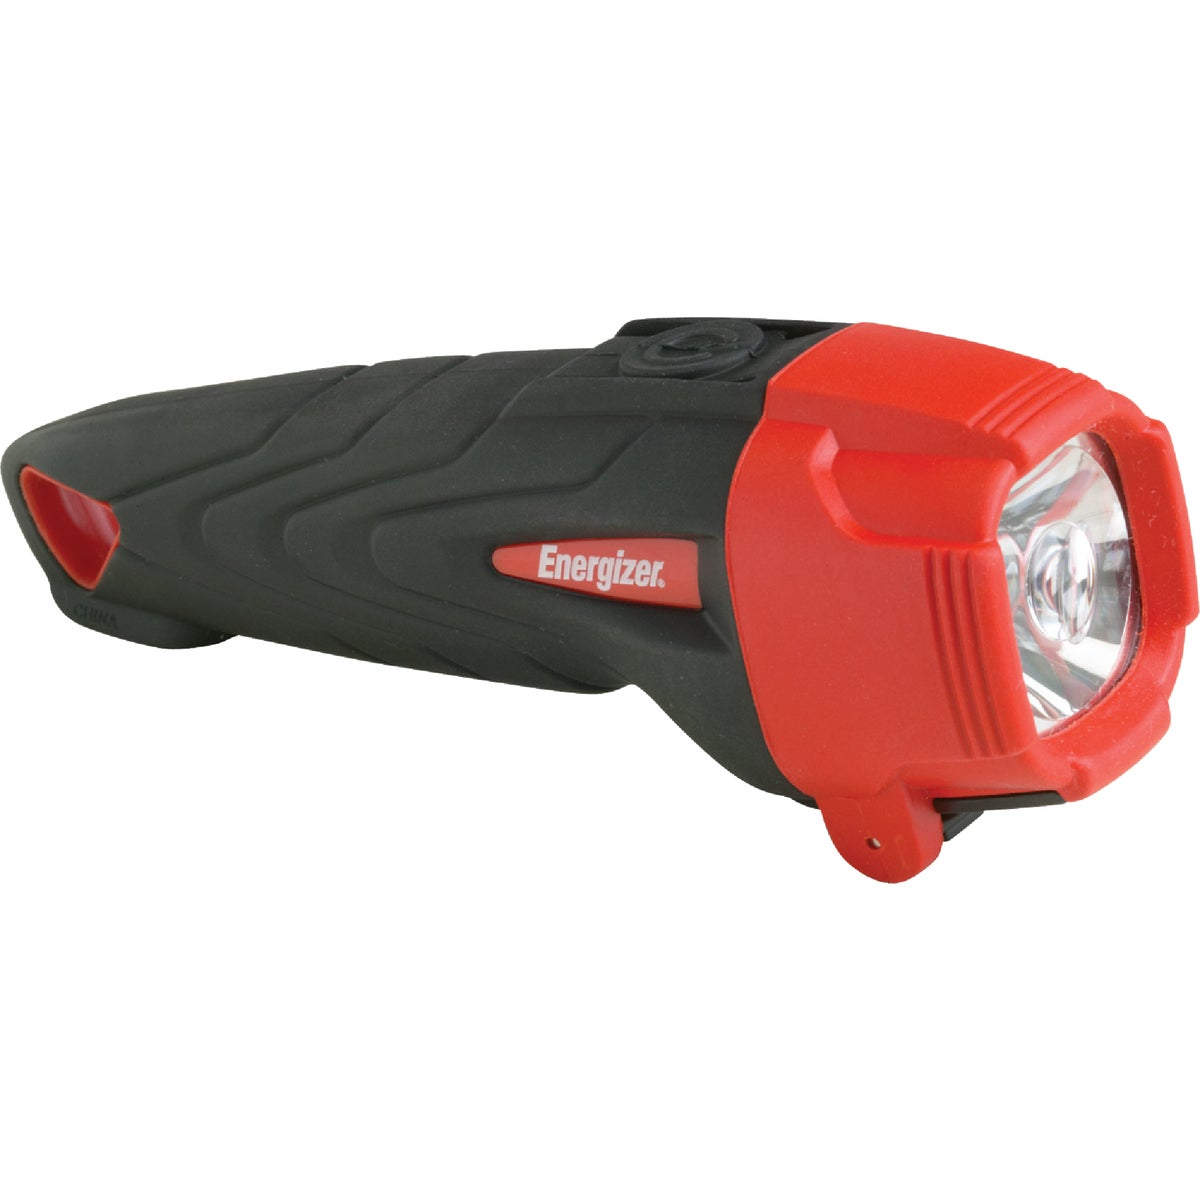 RUBBER AA LED FLASHLIGHT - ENRUB21E by Energizer